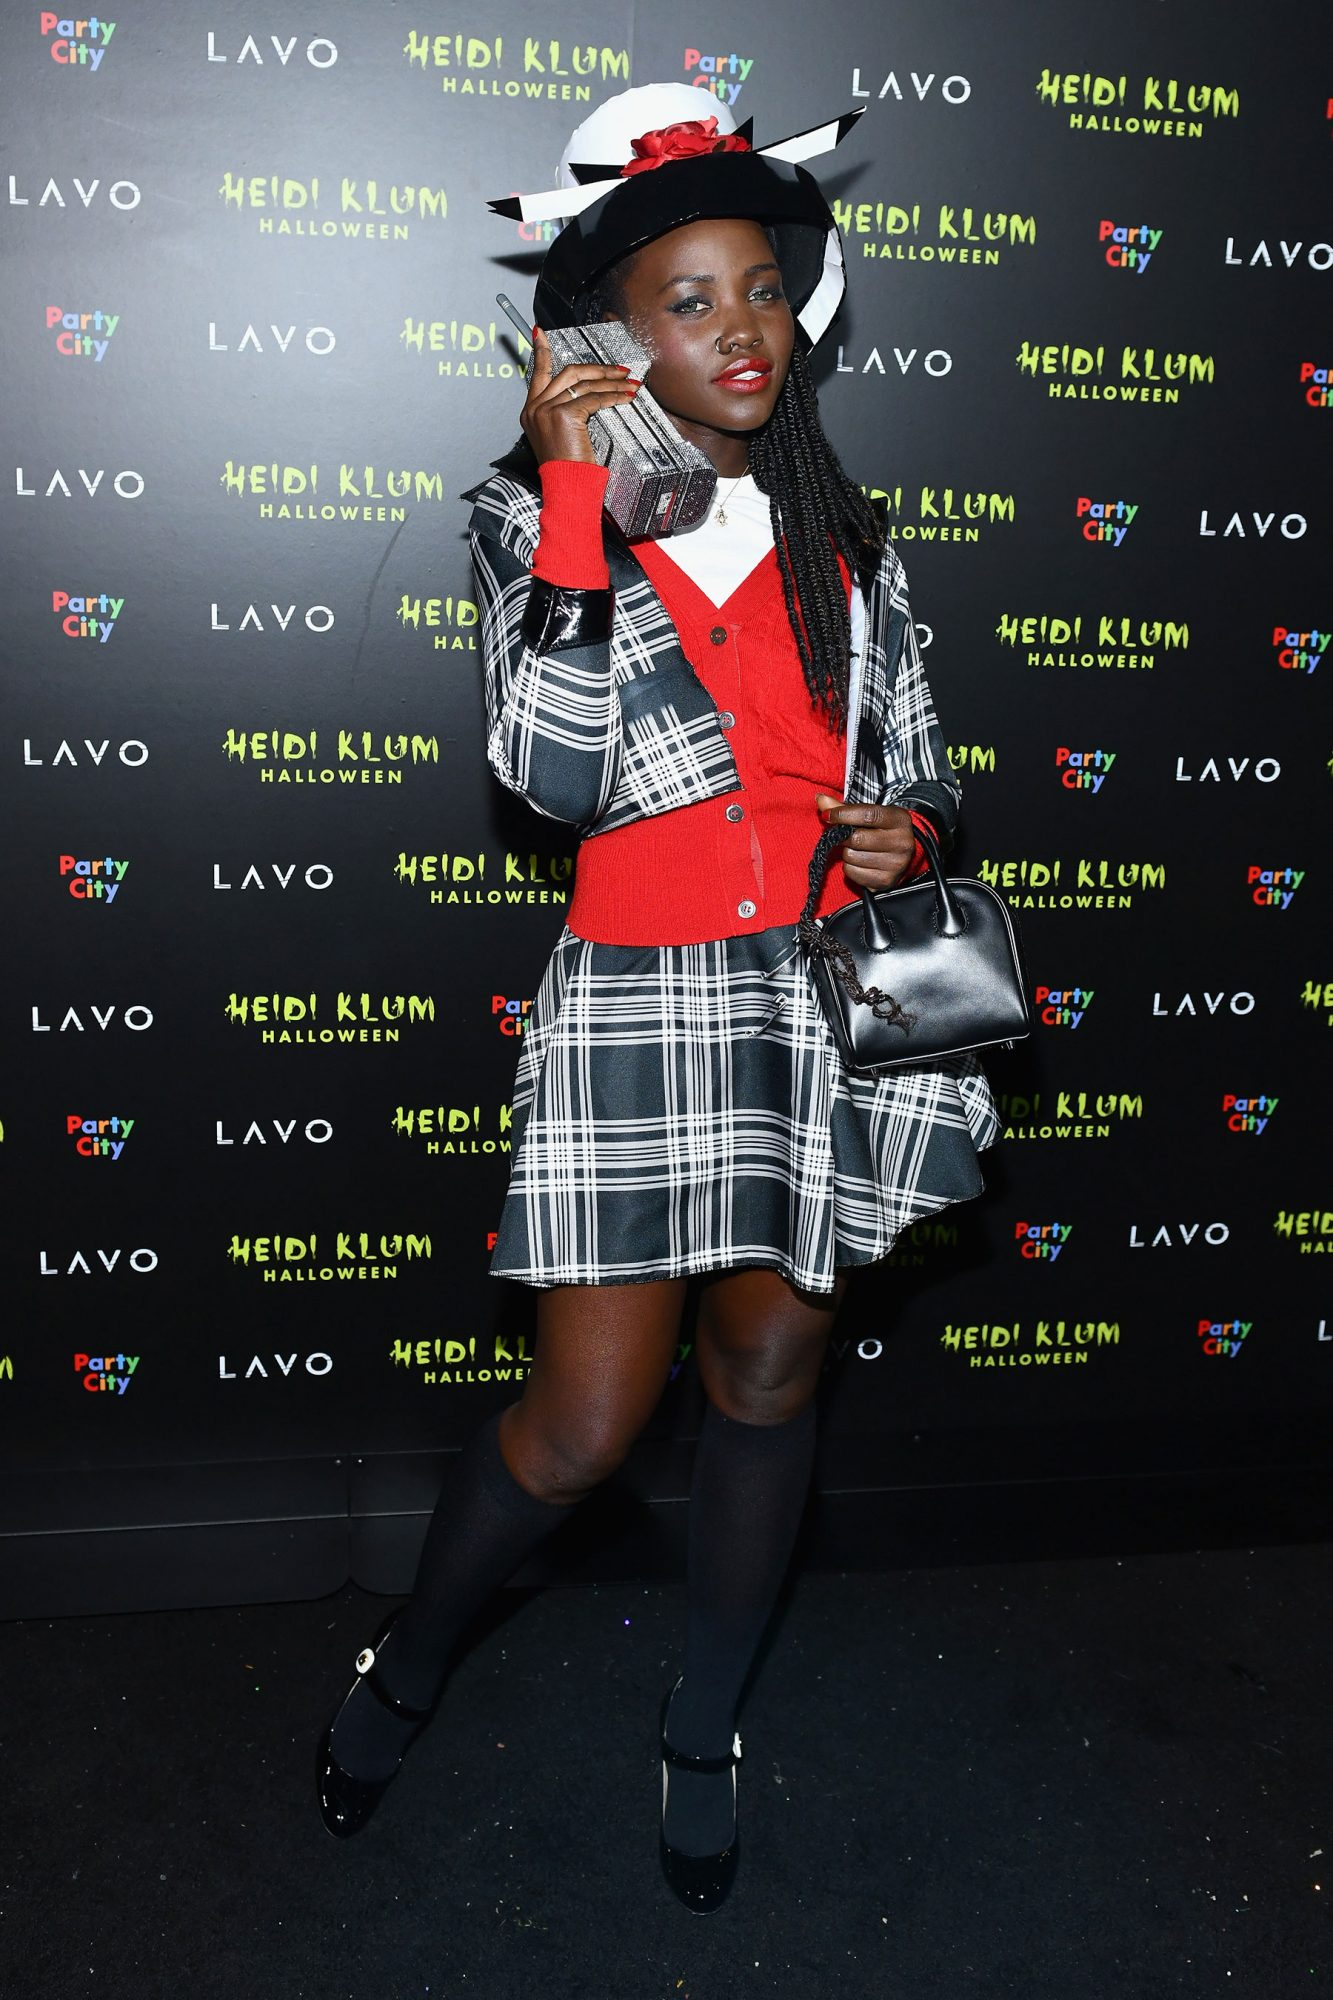 Heidi Klum's 19th Annual Halloween Party Presented By Party City And SVEDKA Vodka At LAVO New York - Arrivals